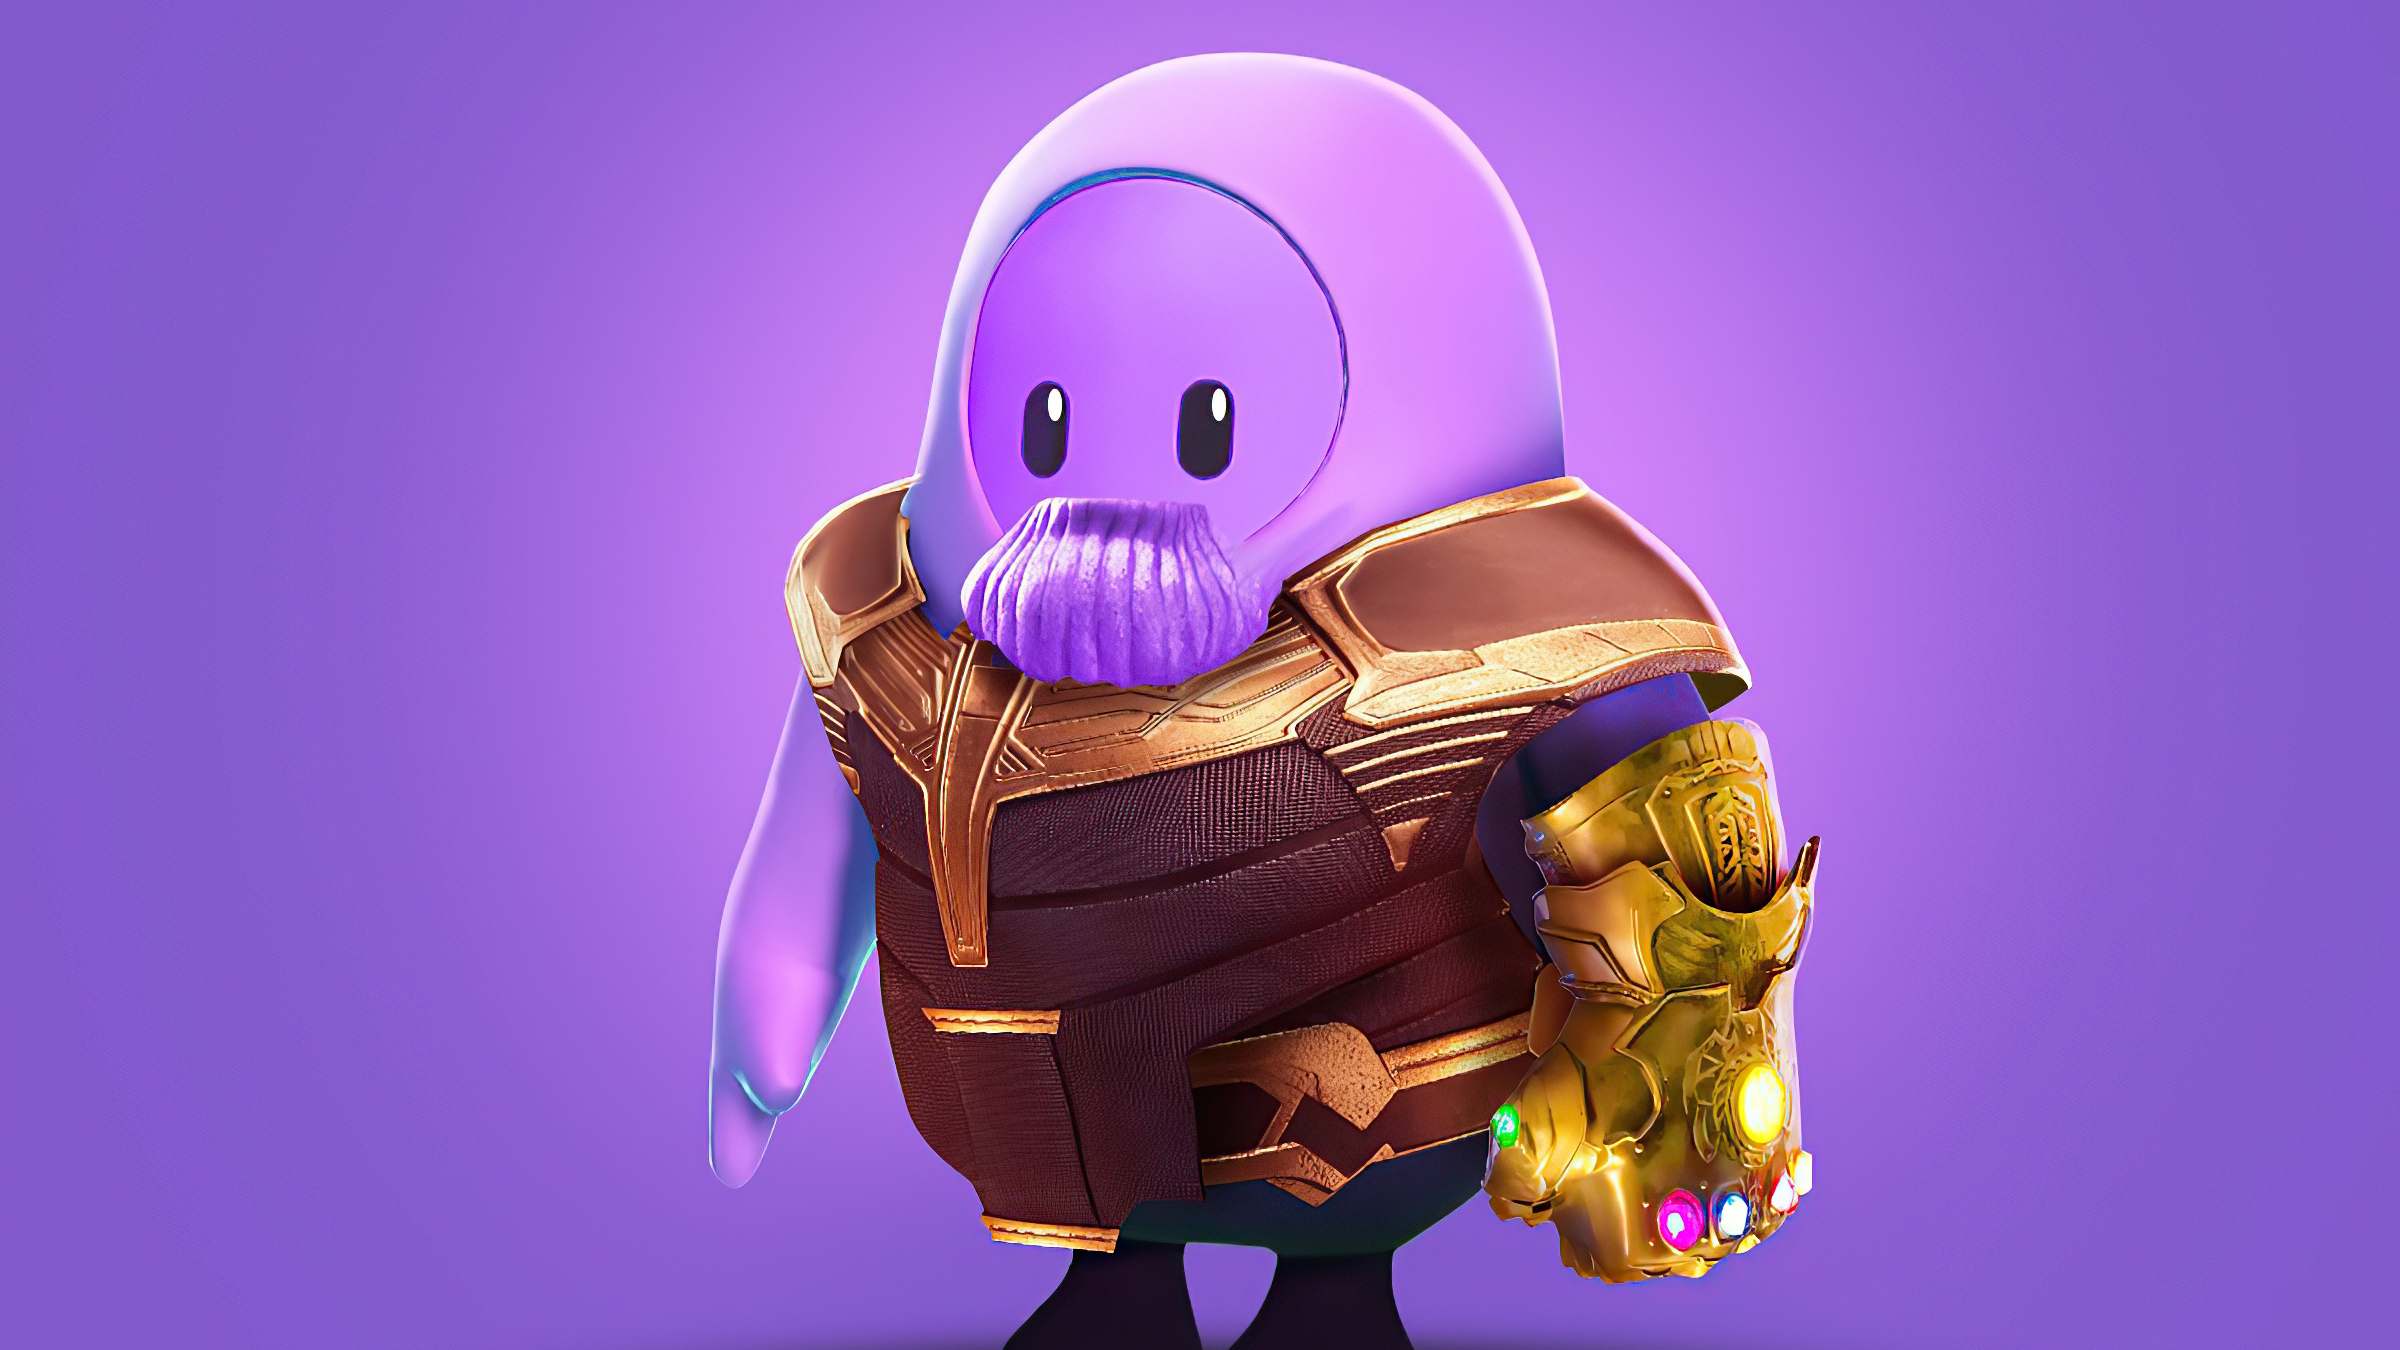 Thanos Fall Guys Hd Games 4k Wallpapers Images Backgrounds Photos And Pictures